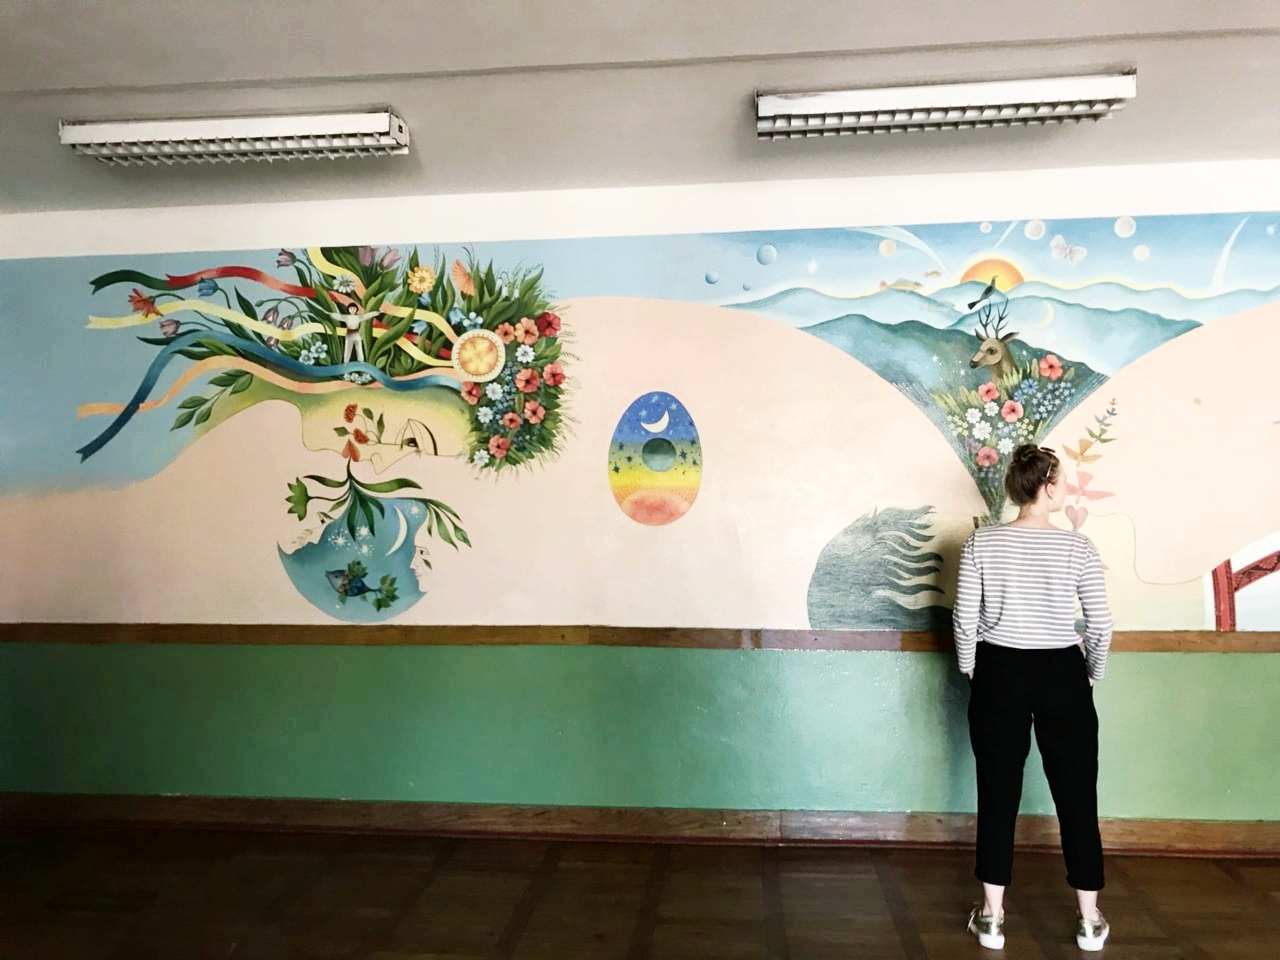 We went to School #25 a couple times during our stay in Lutsk. One time we went so students could practise speaking English (which they were great at, by the way).  Hannah Picklyk  took this photo of me admiring one of the murals in the school.